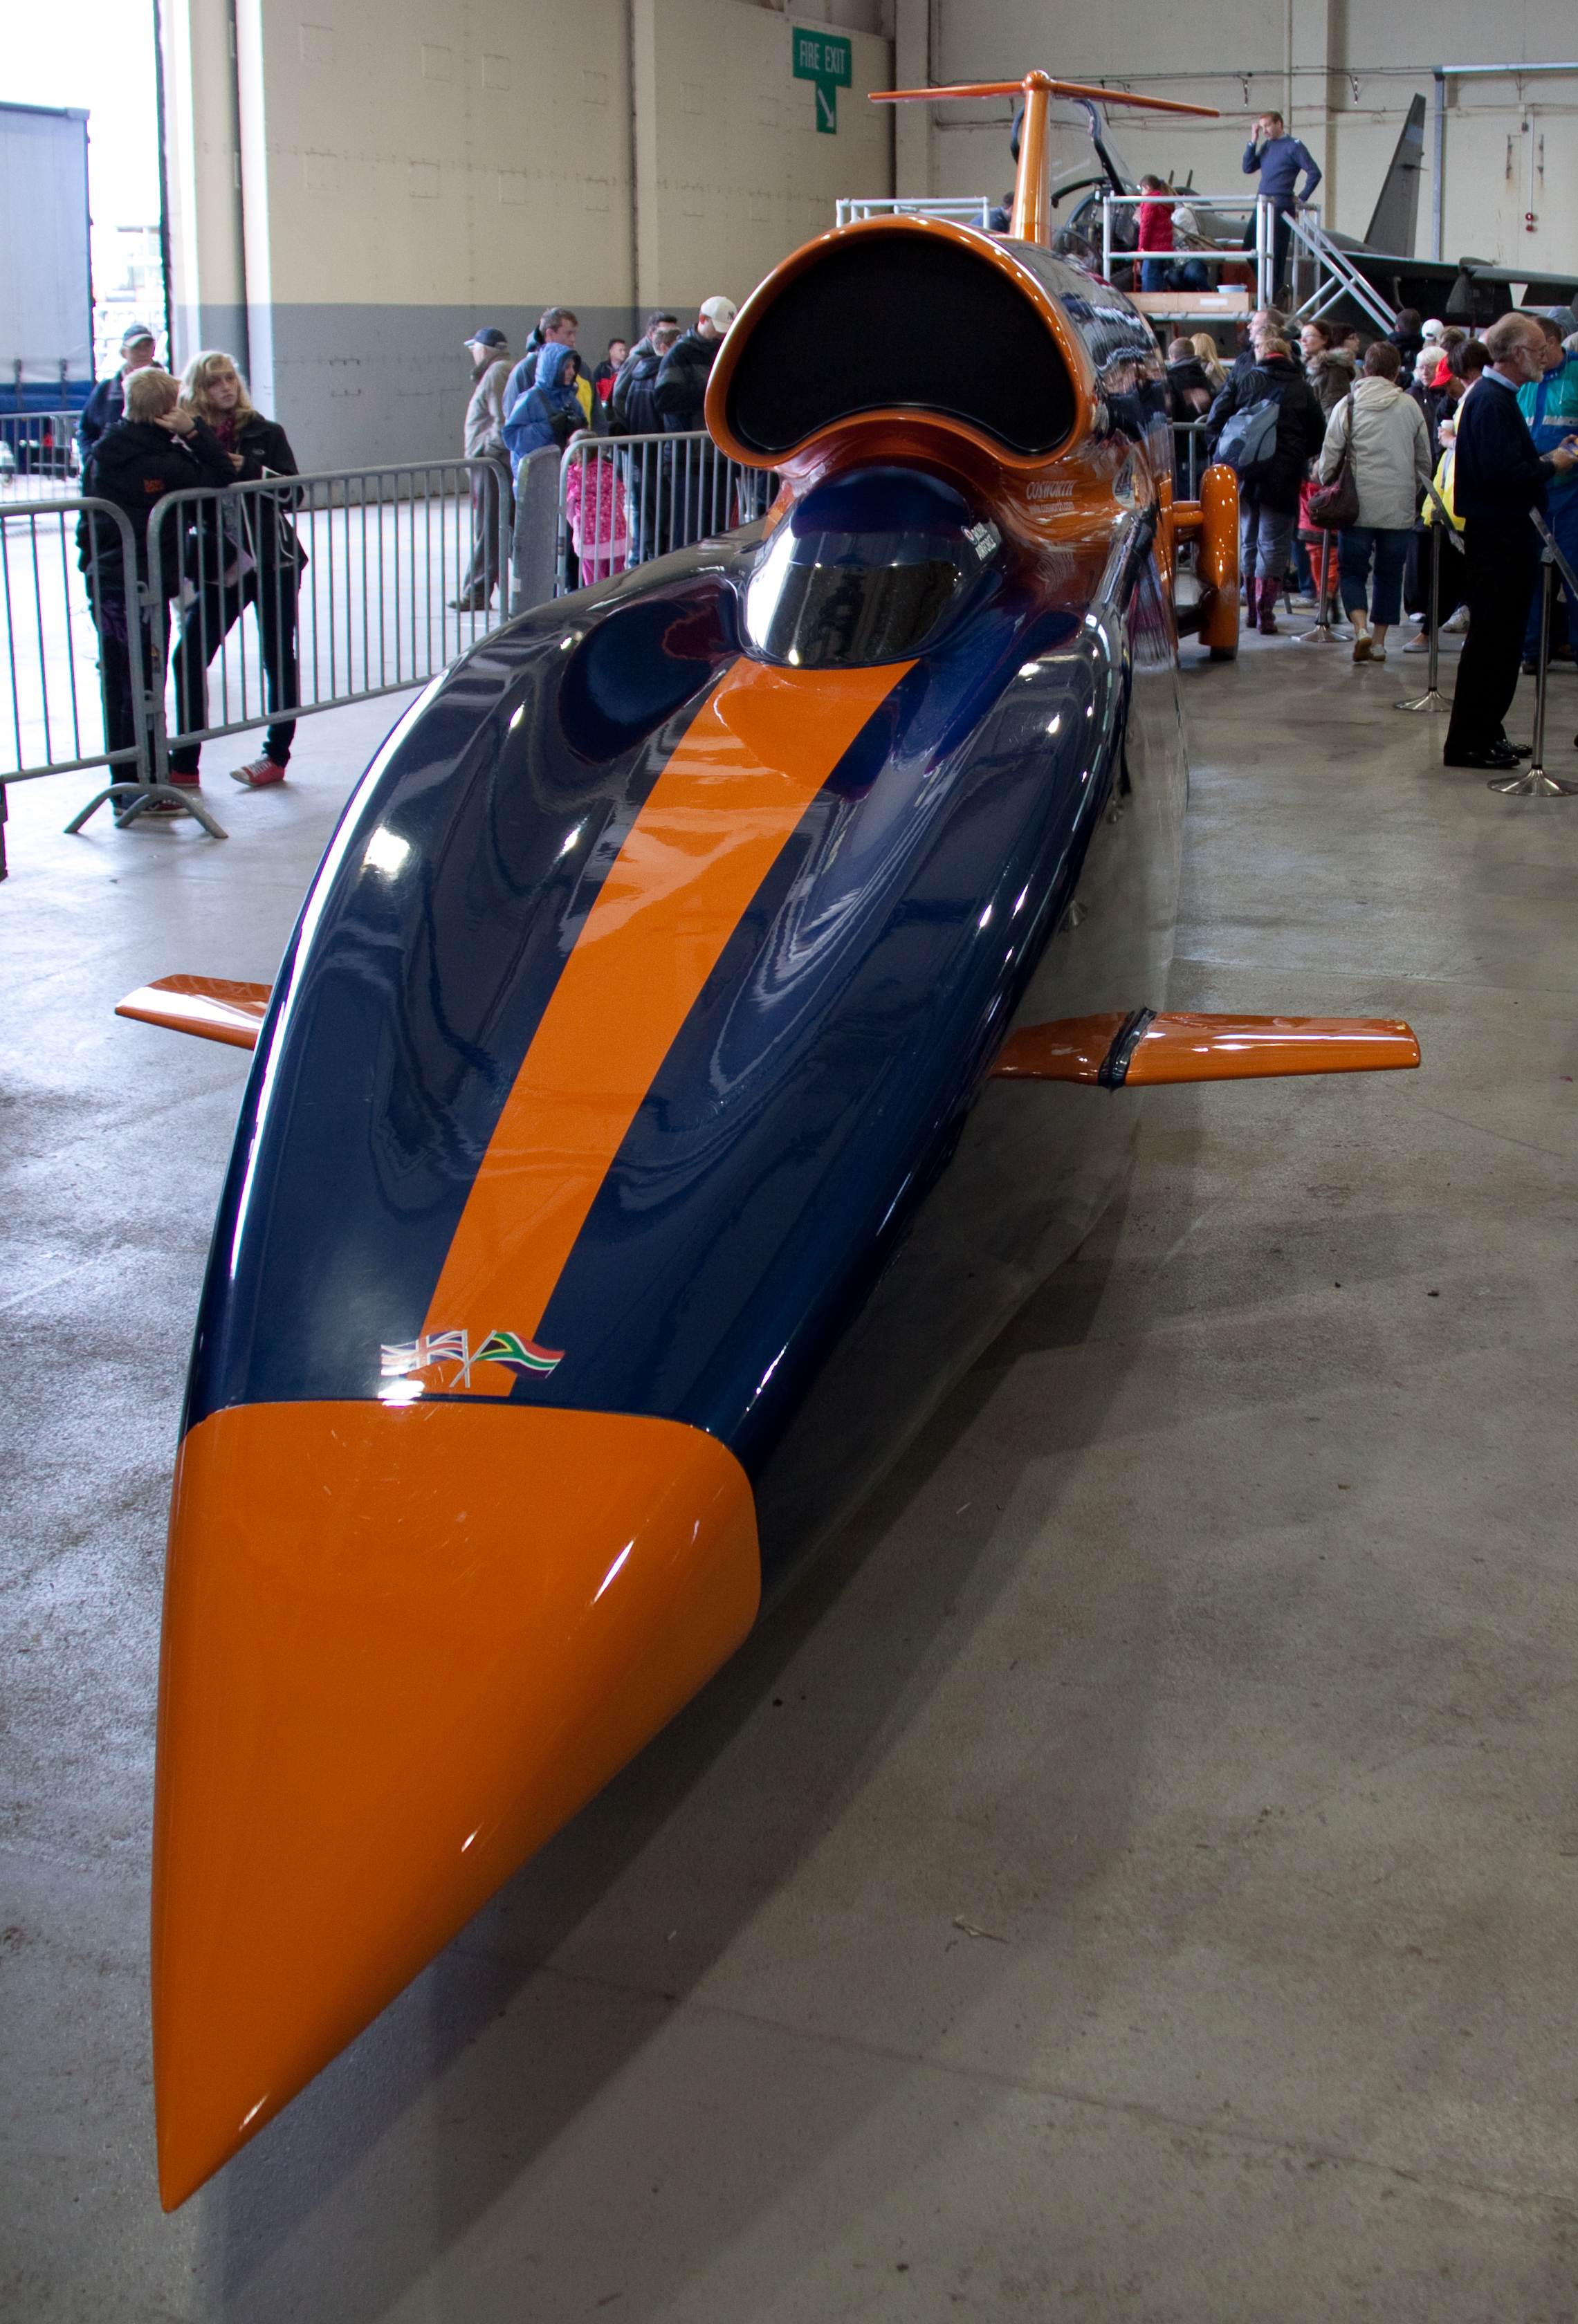 Bloodhound_1000mph_Land_speed_record_project